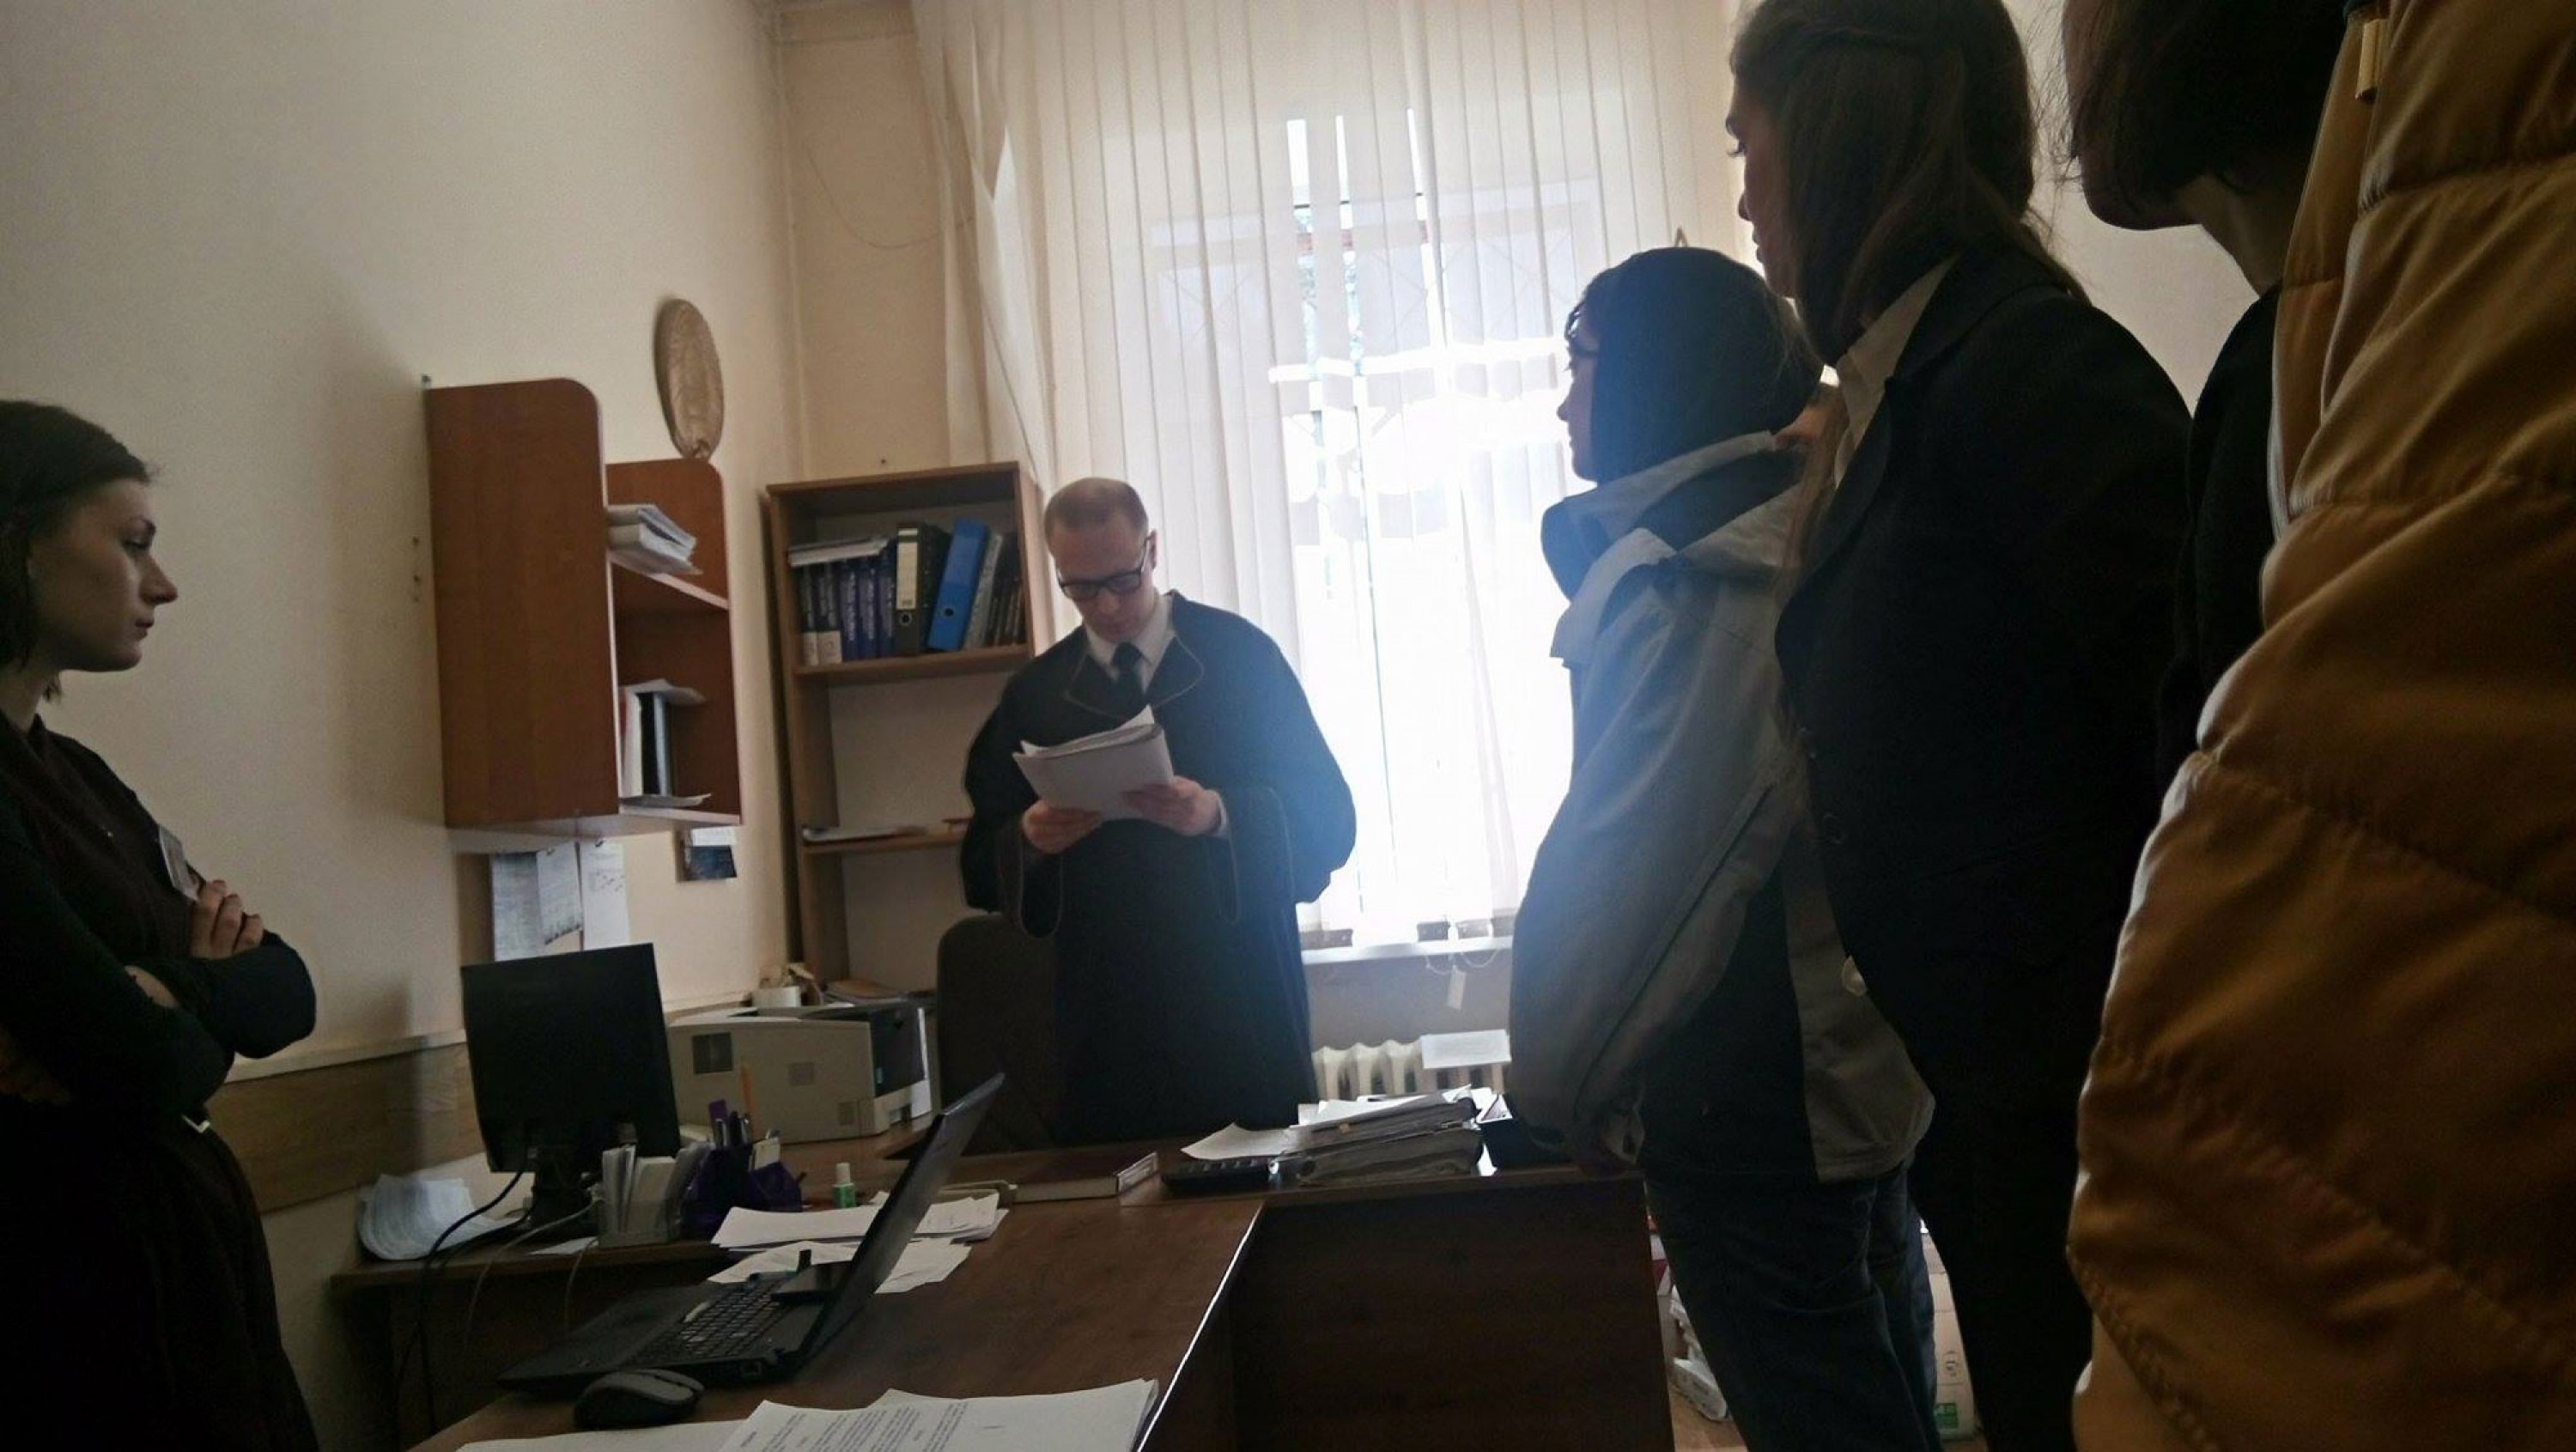 Judge Dzmitry Zhdanok announces a 15-day arrest order for journalist Maryna Kastylianchanka. Minsk, 27 March 2017